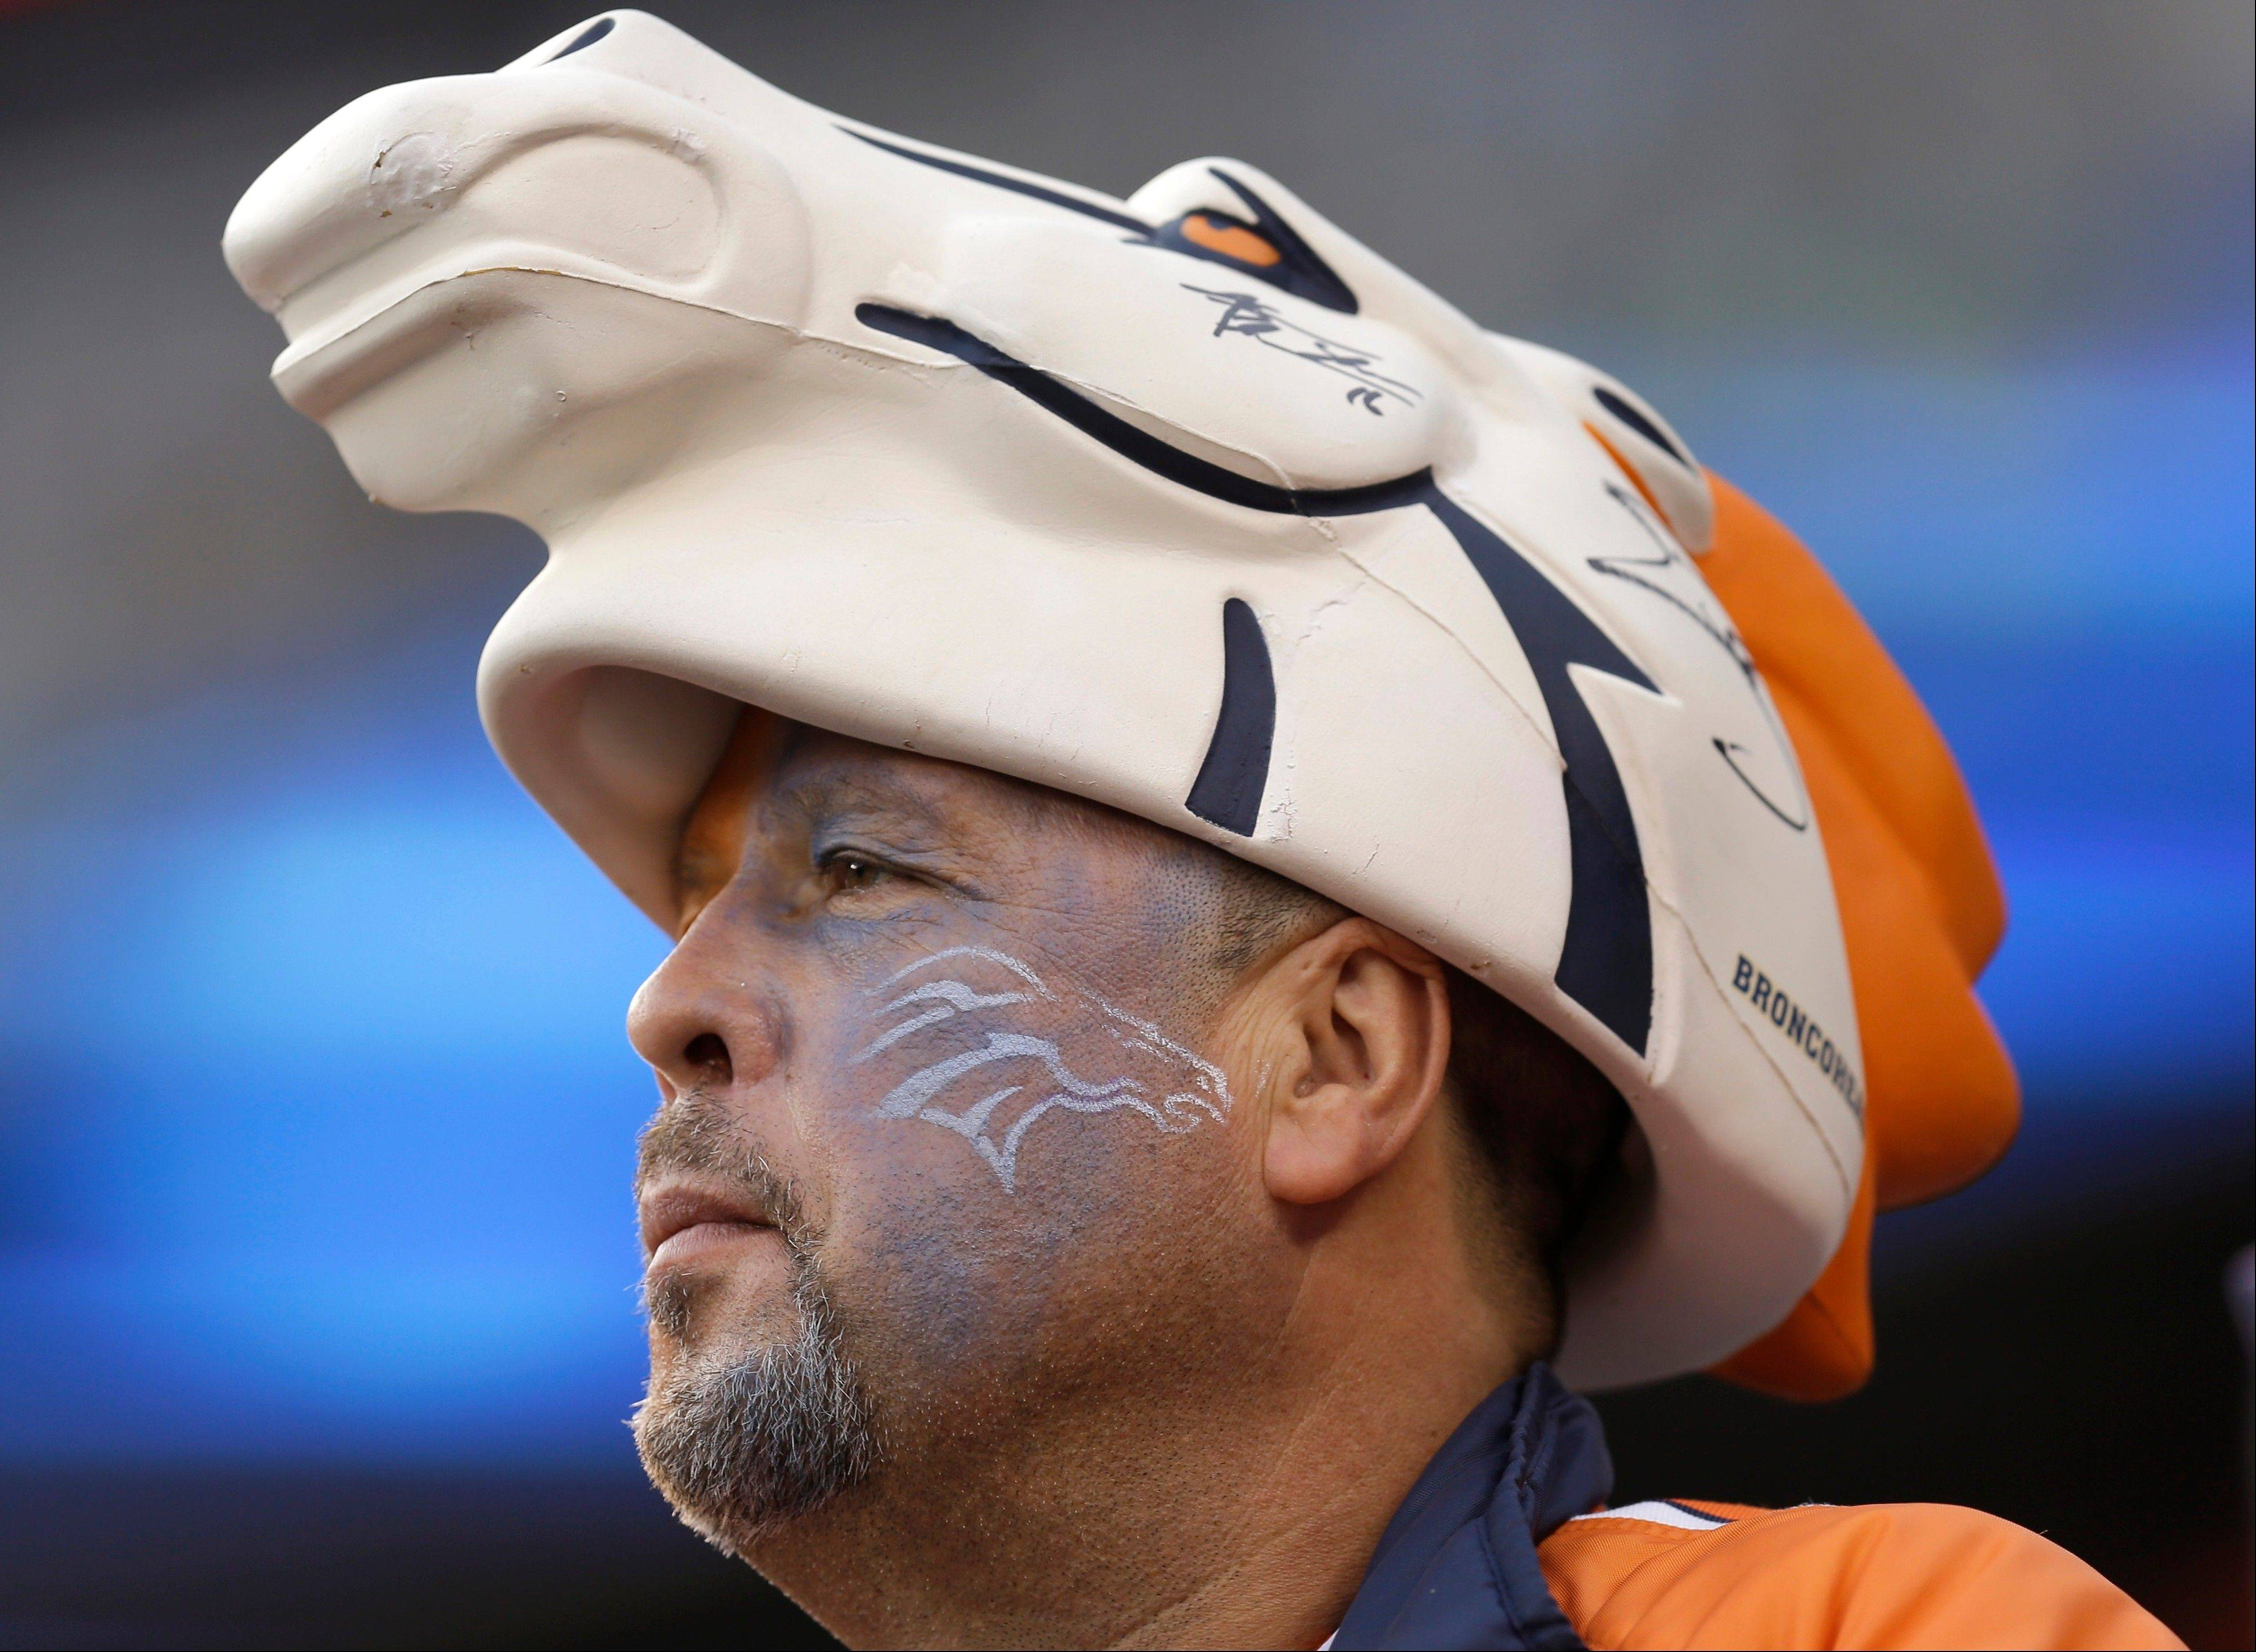 Steve Liedtke, of Denver, wears Denver Broncos head gear before the NFL Super Bowl XLVIII football game between the Seattle Seahawks and the Denver Broncos.